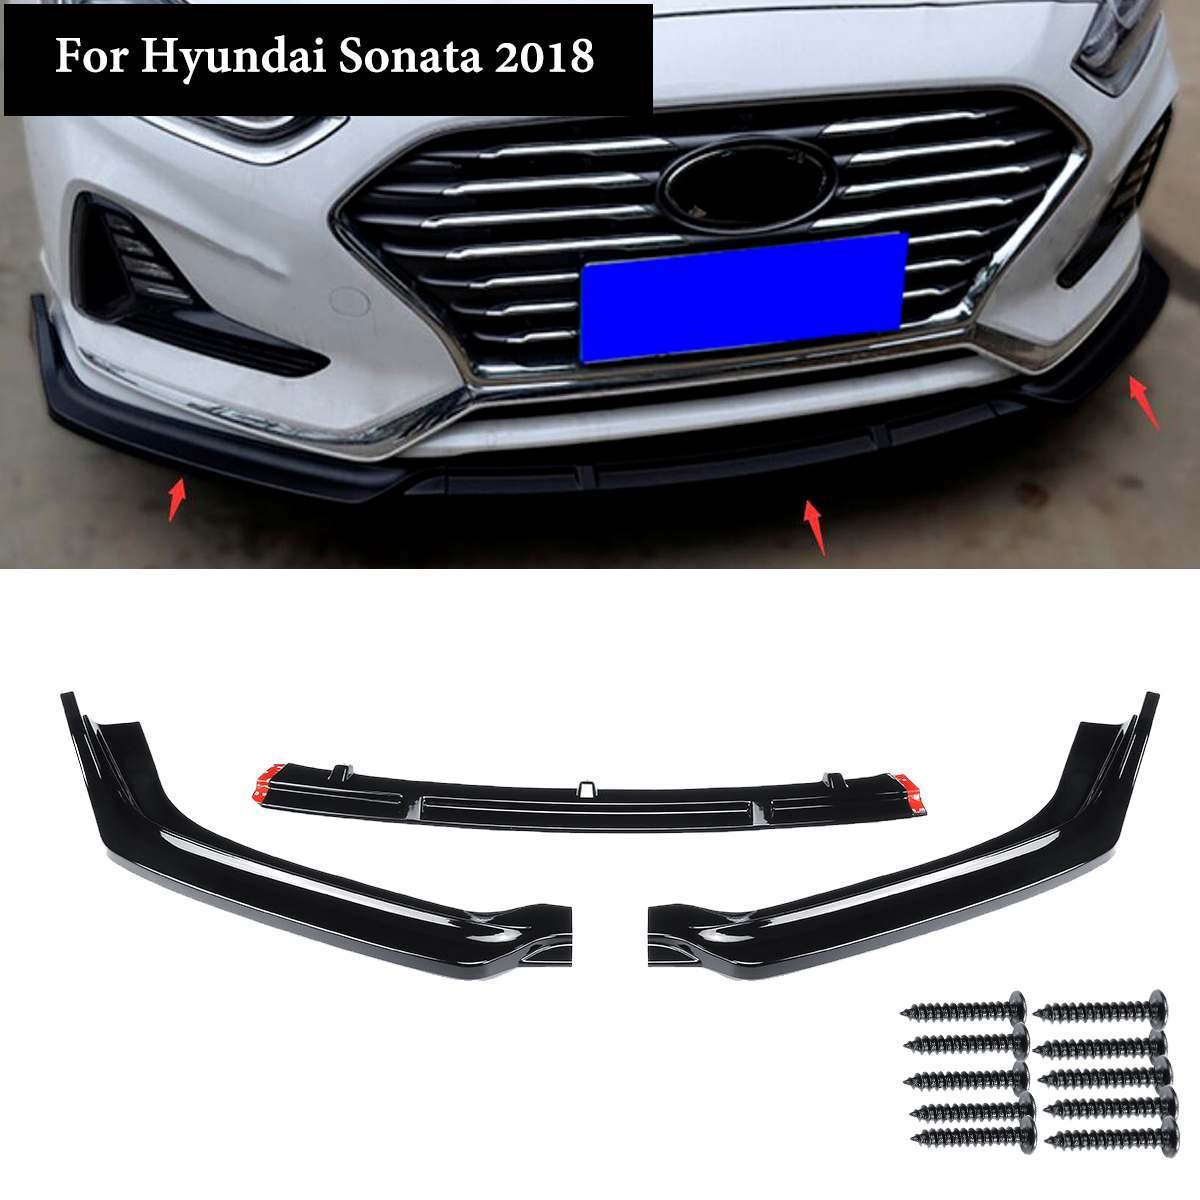 1 Set Car Front Bumper Lip Cover Auto Exterior Parts 3pcs Gloss Black Front Bumper Trim for Hyundai Sonata Hybrid 2018